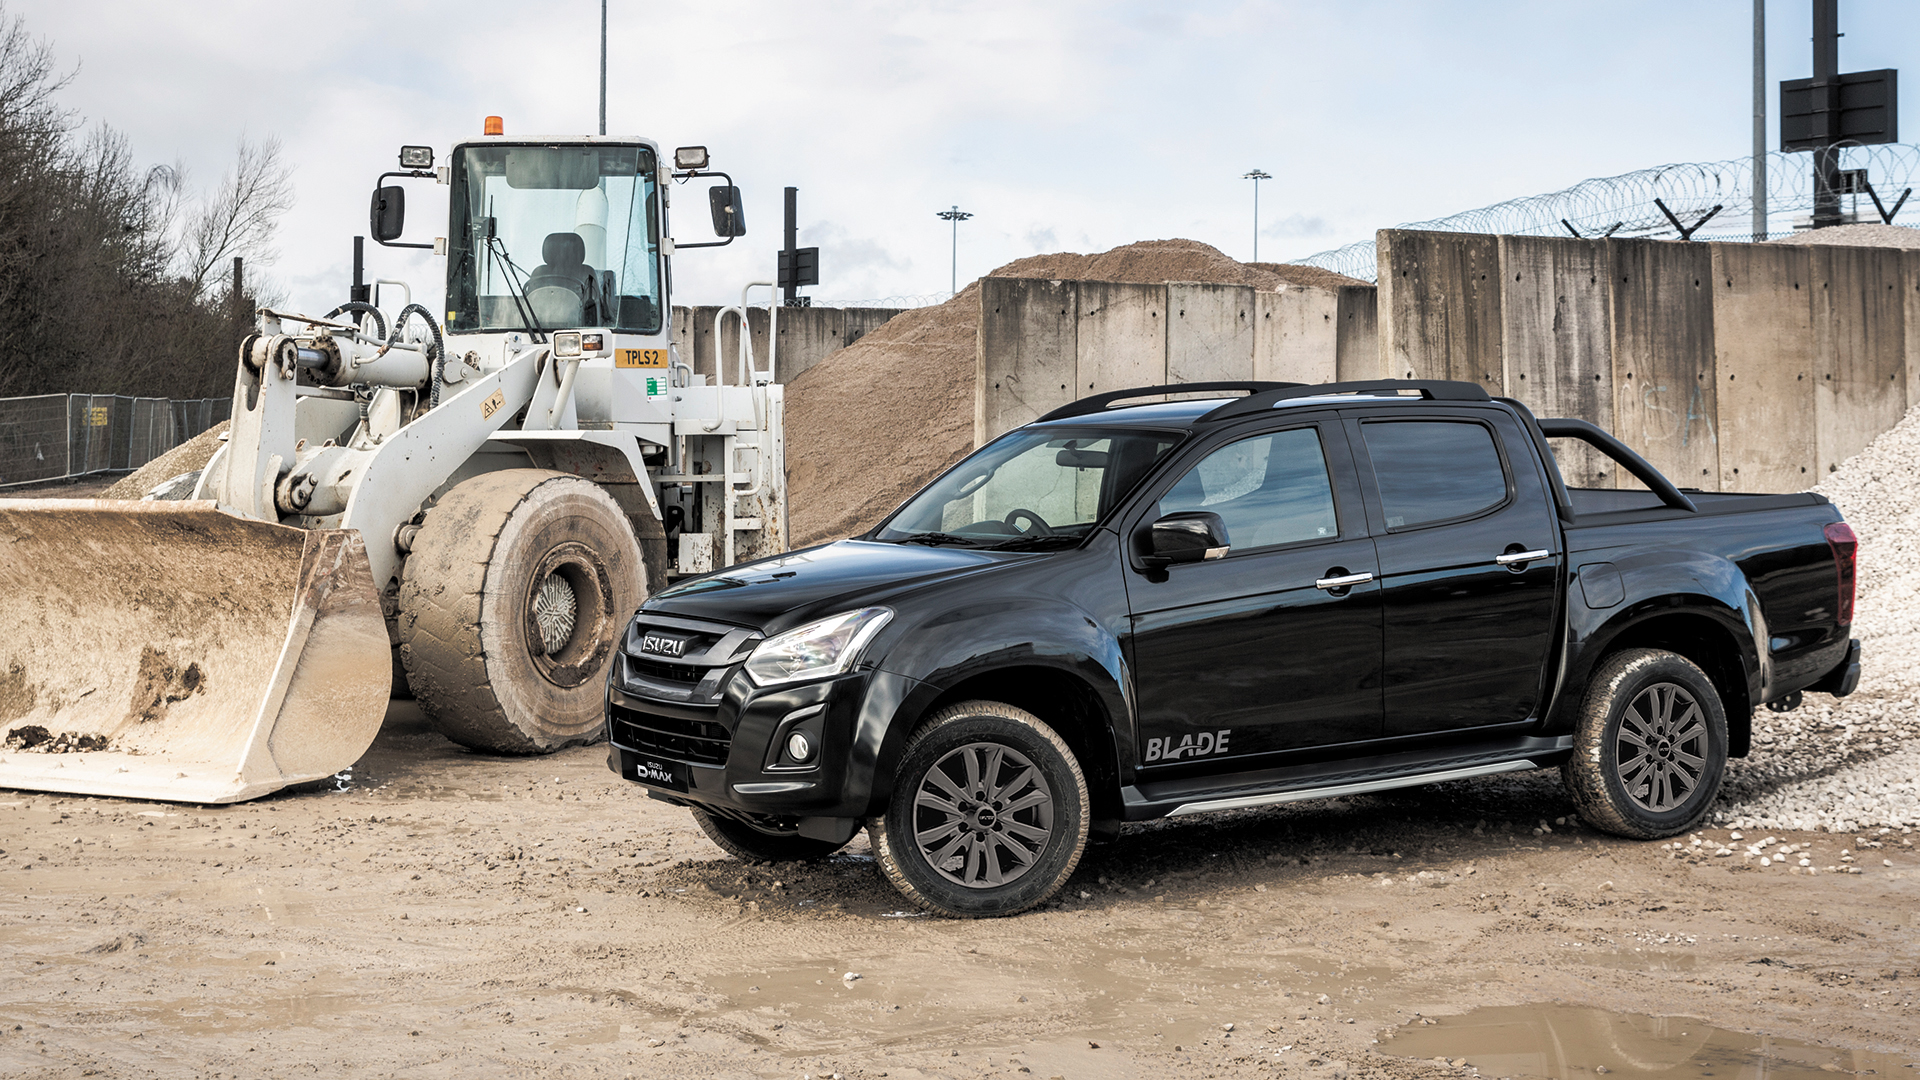 Our top of the range, luxurious Isuzu D-Max Blade in black